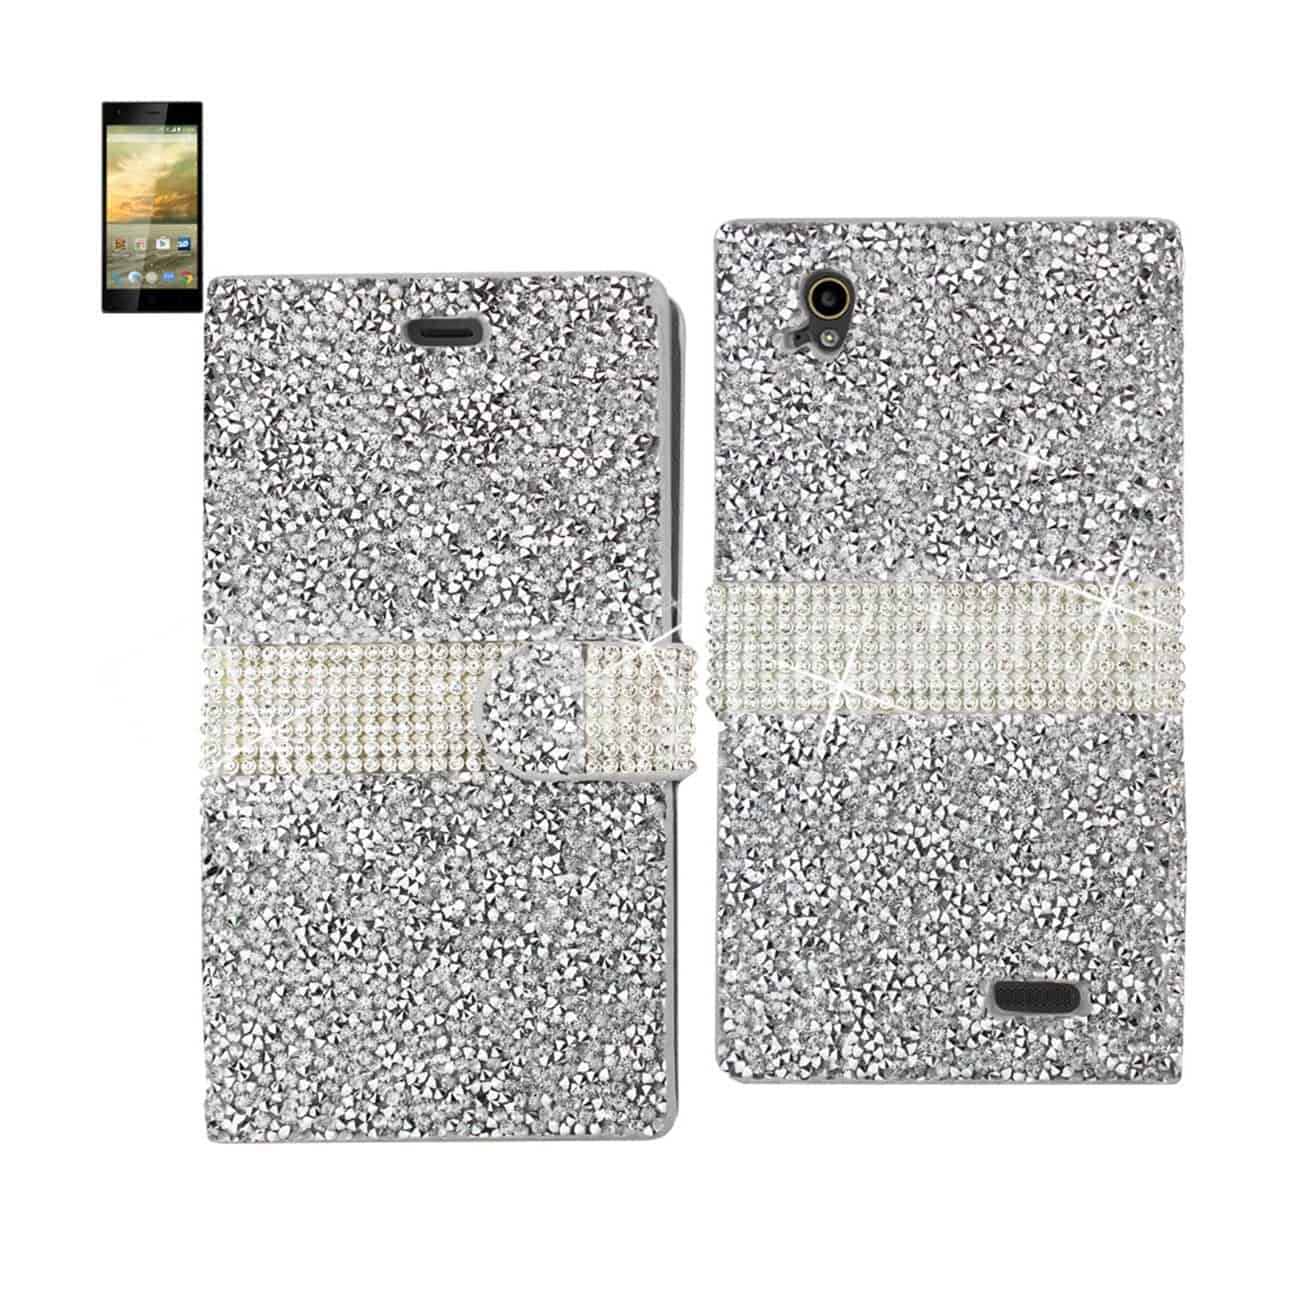 ZTE WARP ELITE JEWELRY RHINESTONE WALLET CASE IN SILVER